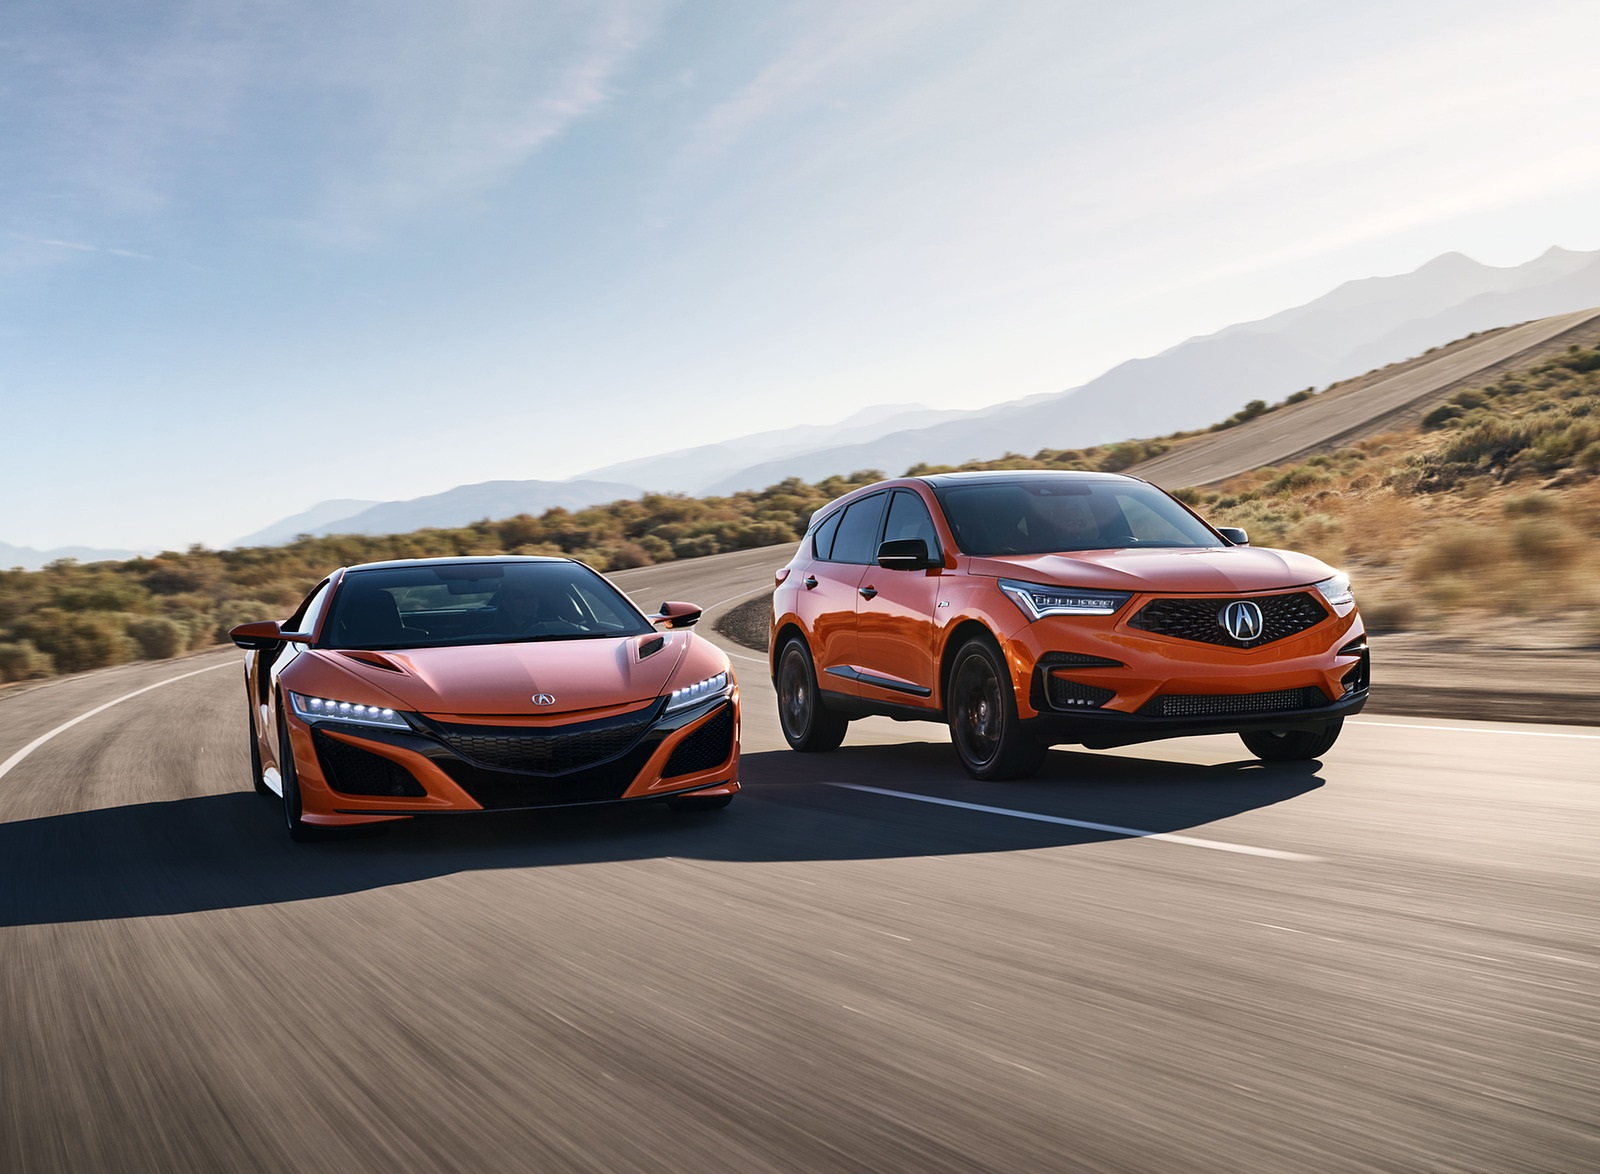 2021 Acura RDX PMC Edition and Acura NSX Wallpapers (1)